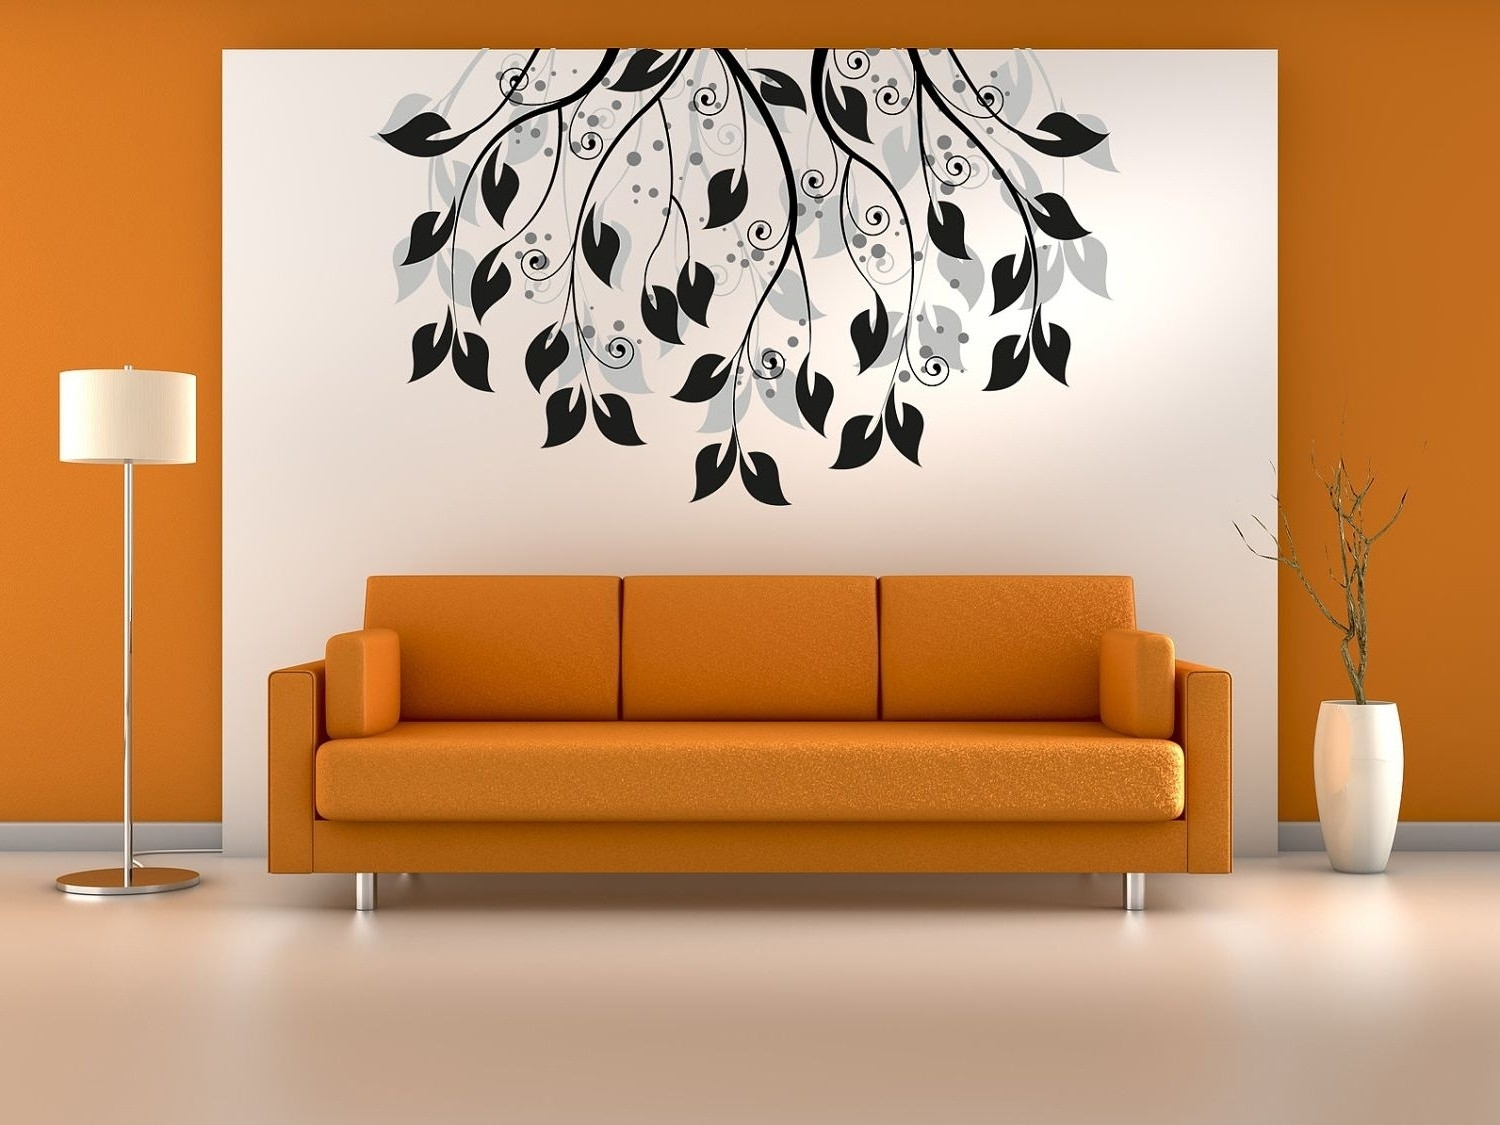 Creative Wall Painting Ideas For Living Room Nakicphotography with regard to Creative Wall Painting Ideas For Living Room 30073